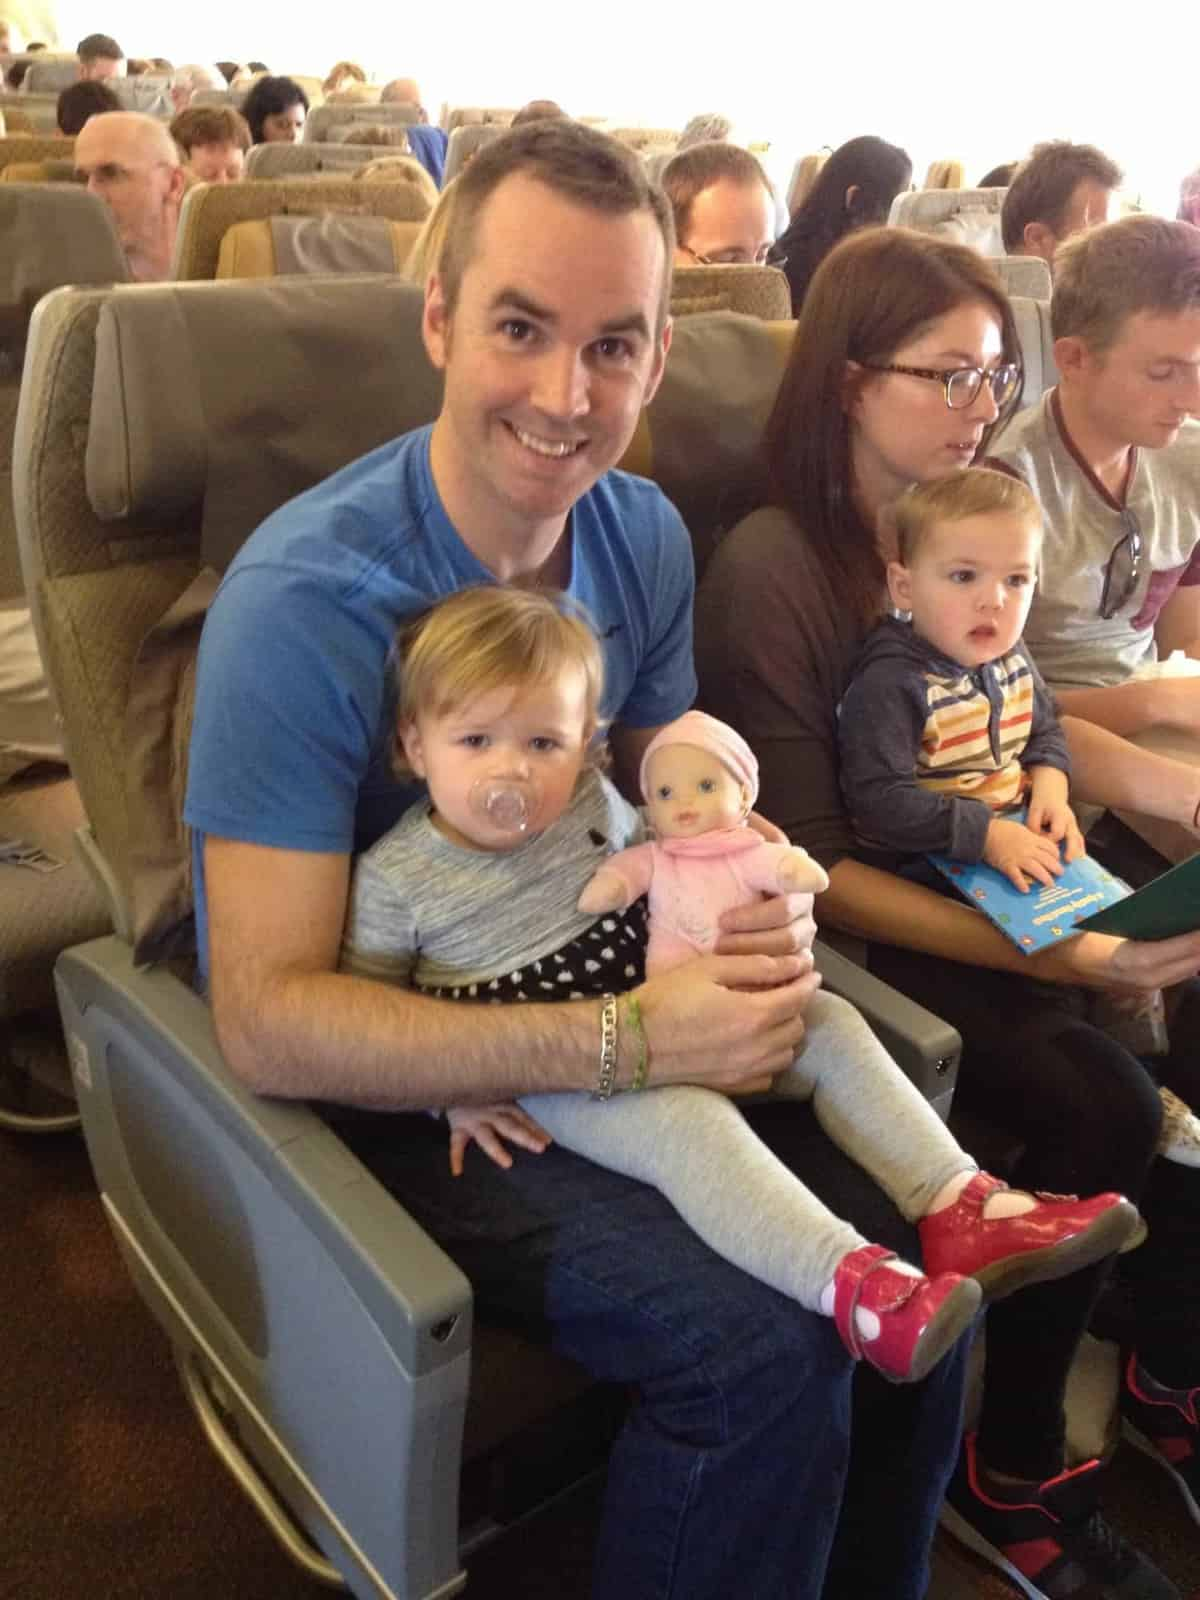 Travelling with a baby on Singapore Airlines